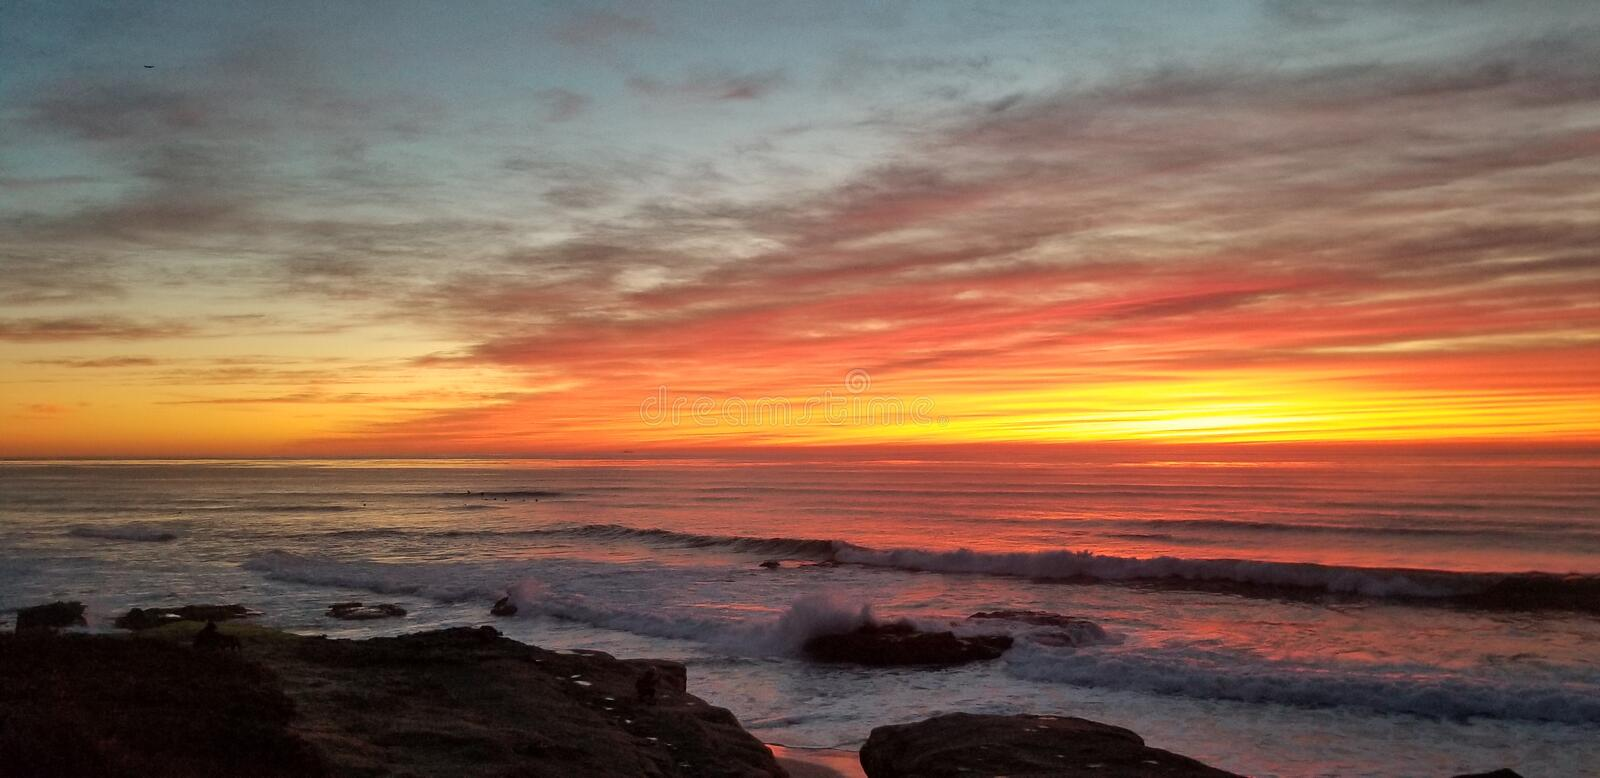 Dramatic Sunset over Pacific Ocean - Waves Crashing on the Rocks royalty free stock image